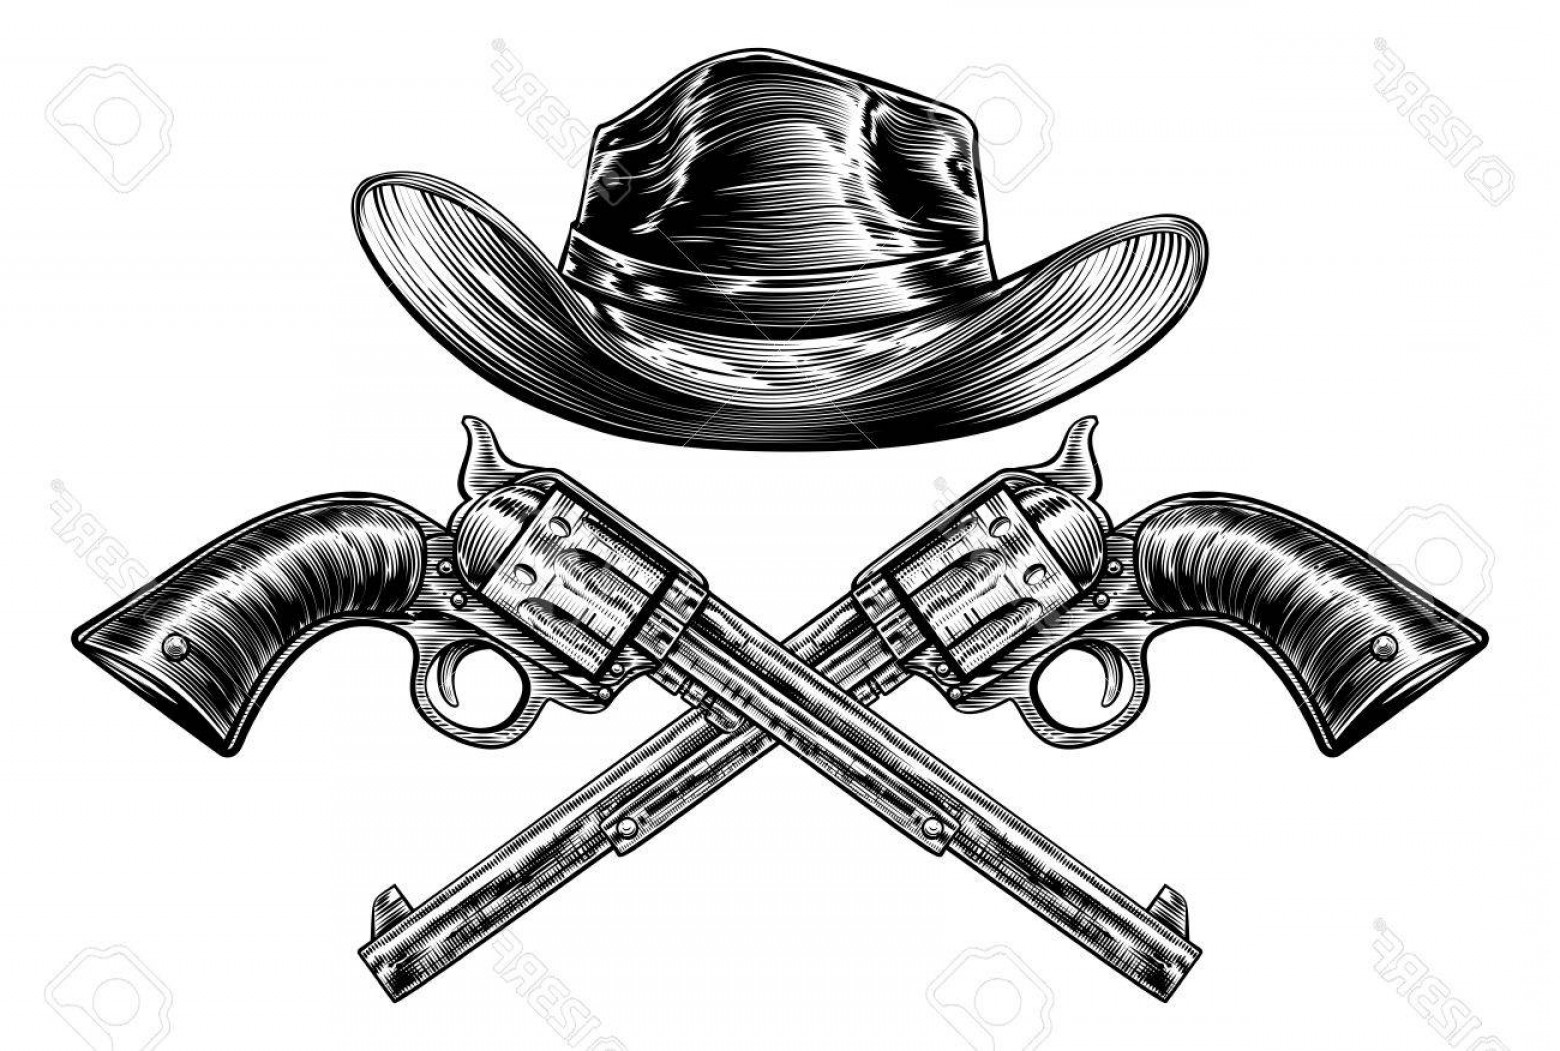 Vintage Crossed Pistols Vector: Photostock Vector A Cowboy Western Hat And Pair Of Crossed Pistol Guns In A Vintage Etched Engraved Style